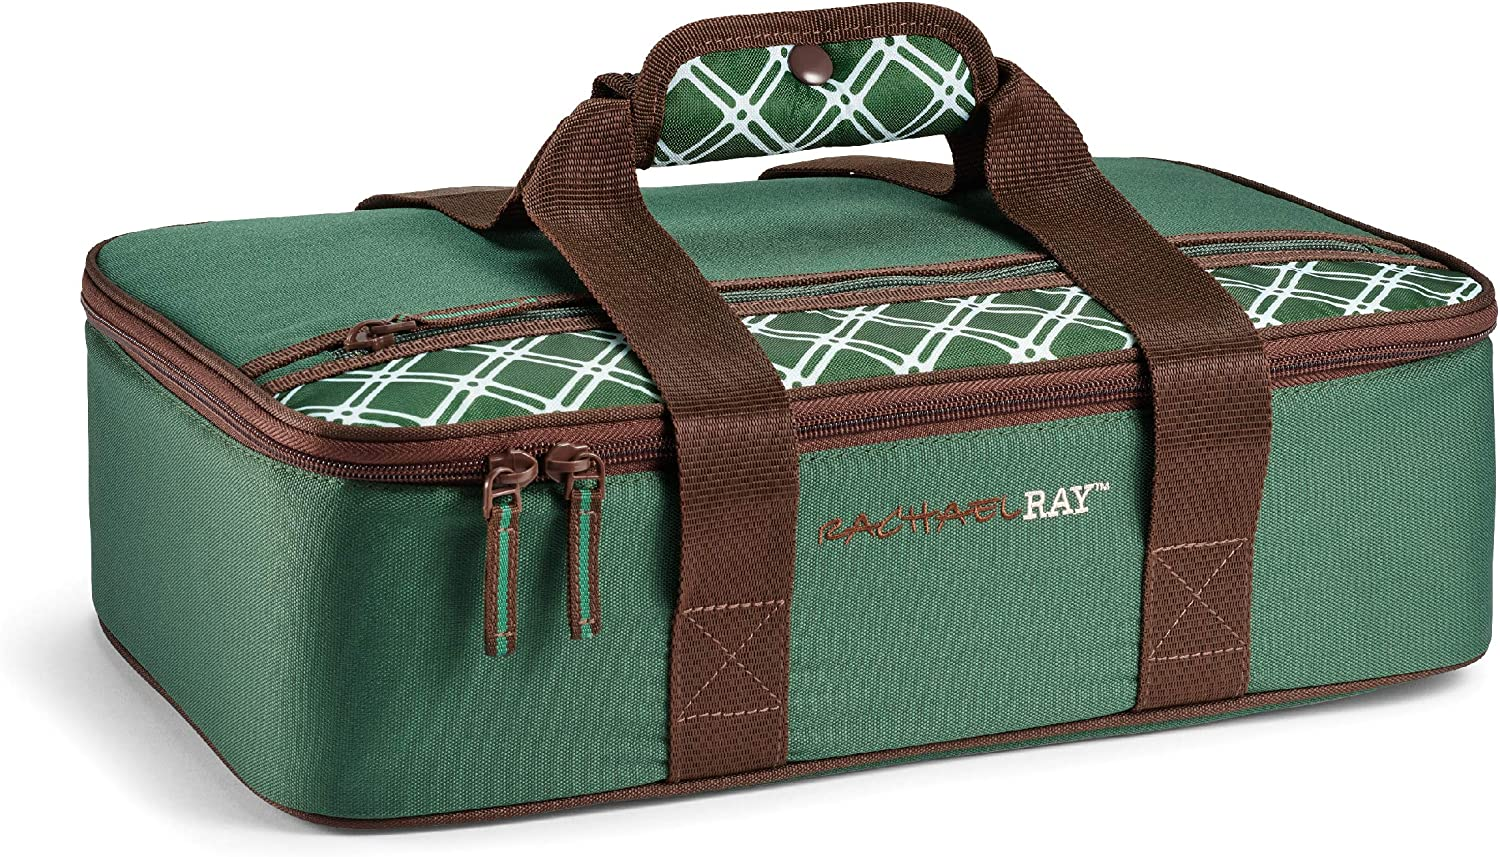 Rachael Ray Lasagna Lugger Insulated Casserole Carrier for Parties, Fits 9